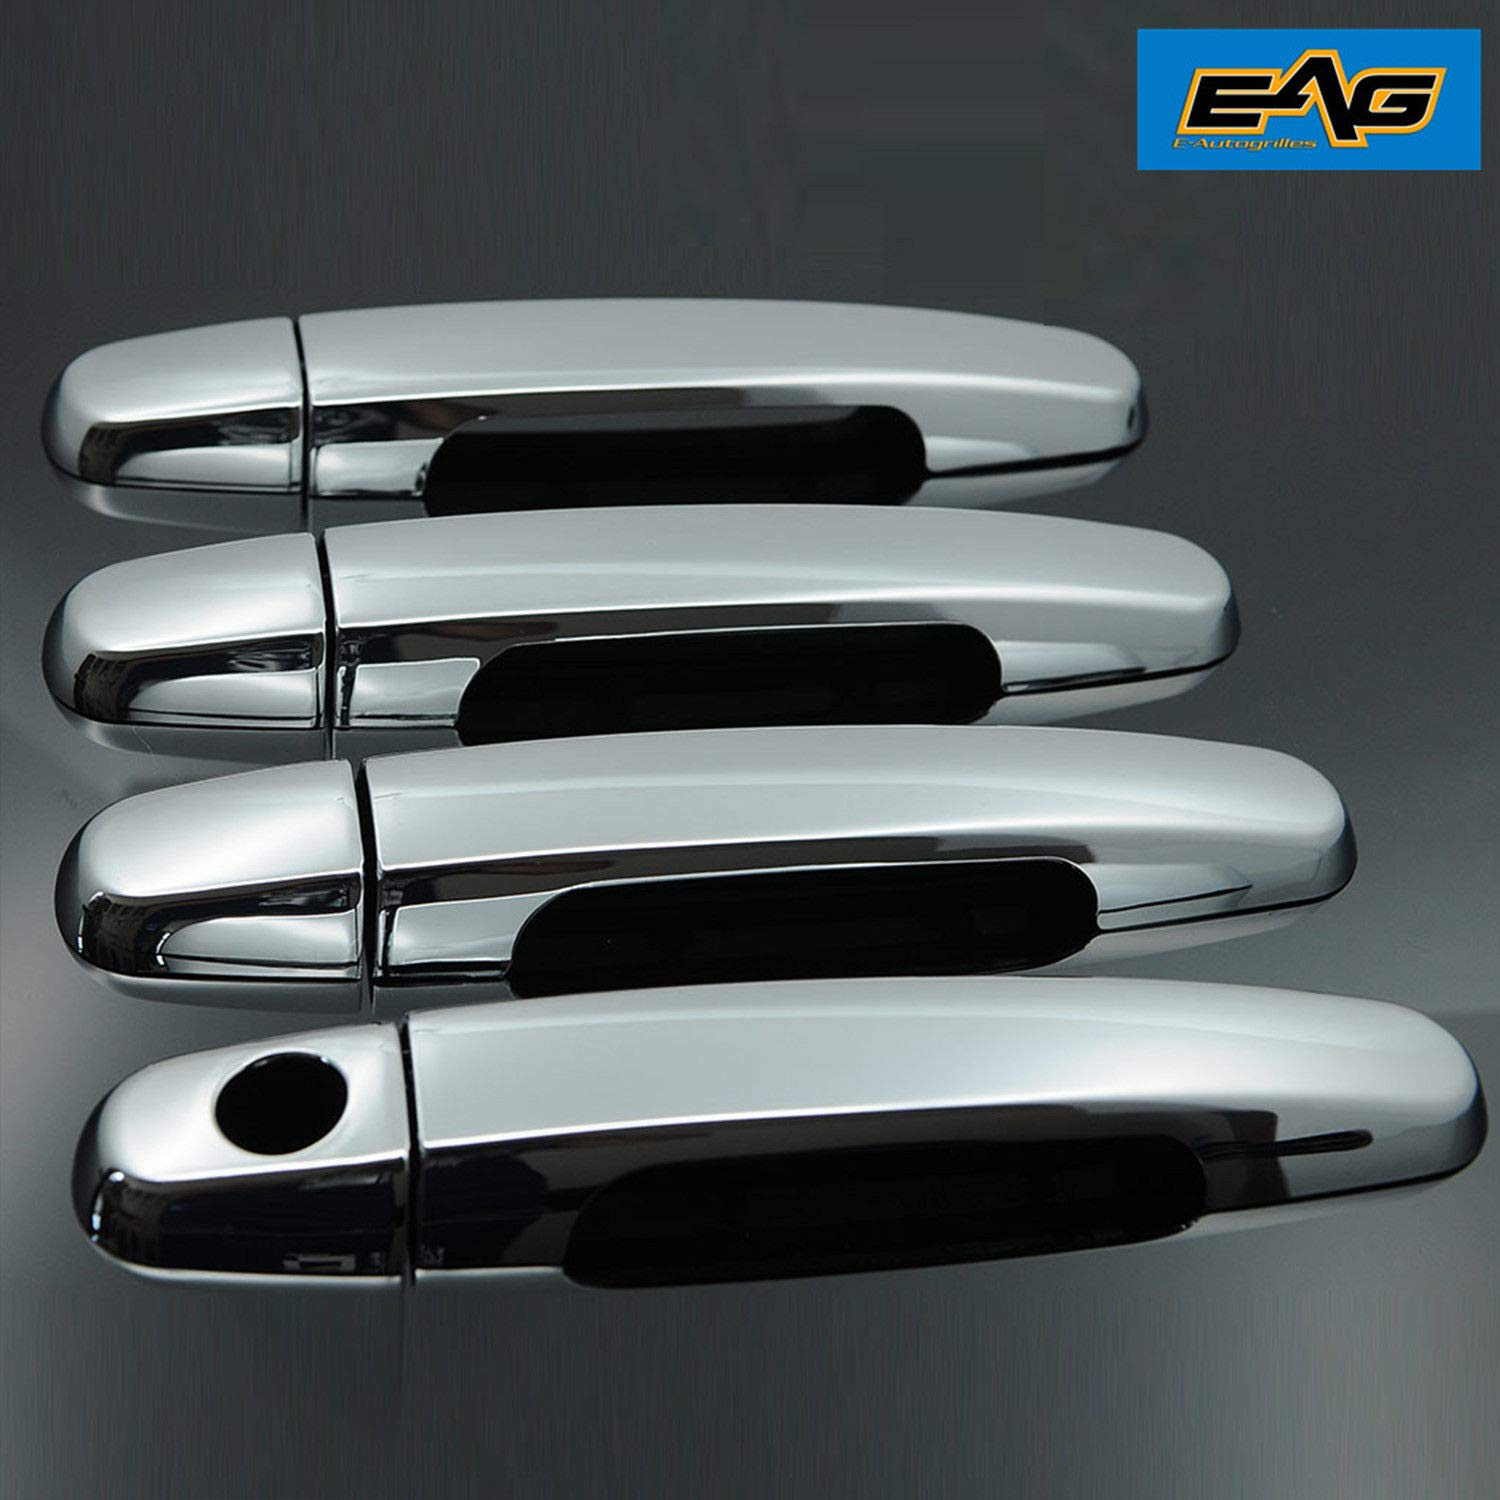 01-07 Toyota Highlander 03-13 Toyota Corolla E-Autogrilles Triple Chrome Plated ABS 4 Door Handle Cover without Passenger Keyhole for 02-06 Toyota Camry 01-11 Toyota RAV4 04-08 Toyota Camry Solara 07-12 Toyota Yaris 04-09 03-13 Toyota Matrix